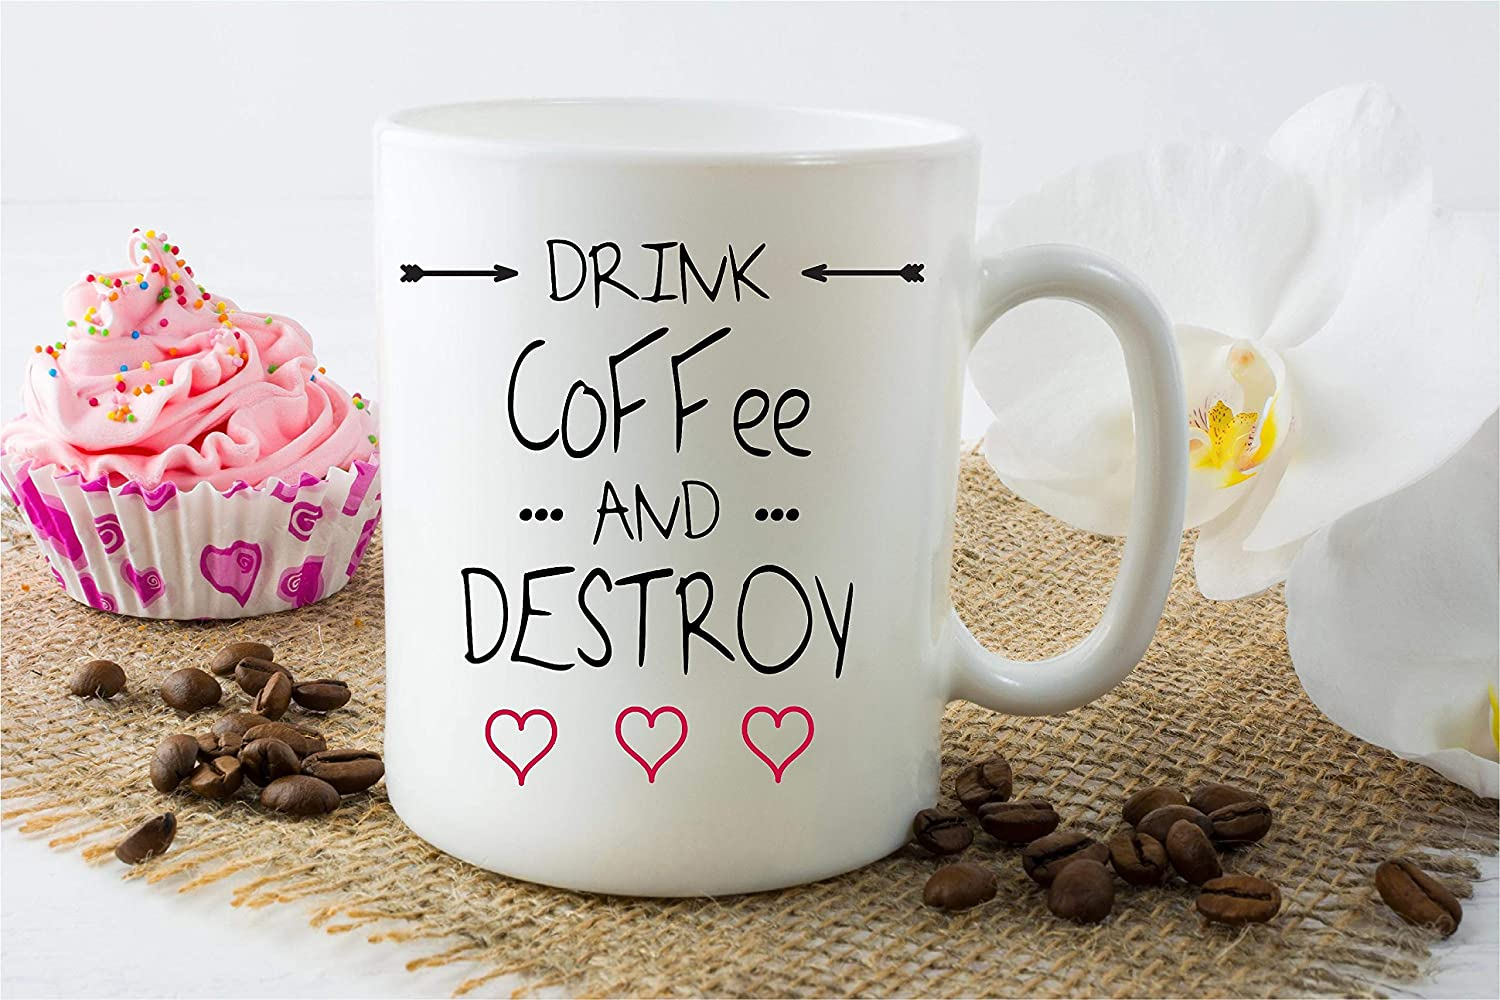 79aaef108 Drink Coffee and Destroy Funny Coffee Mug Great Gift Idea Perfect for Home  or The Office 11oz Ceramic Coffee or Tea Cup by ExpressionMugs:  Amazon.co.uk: ...